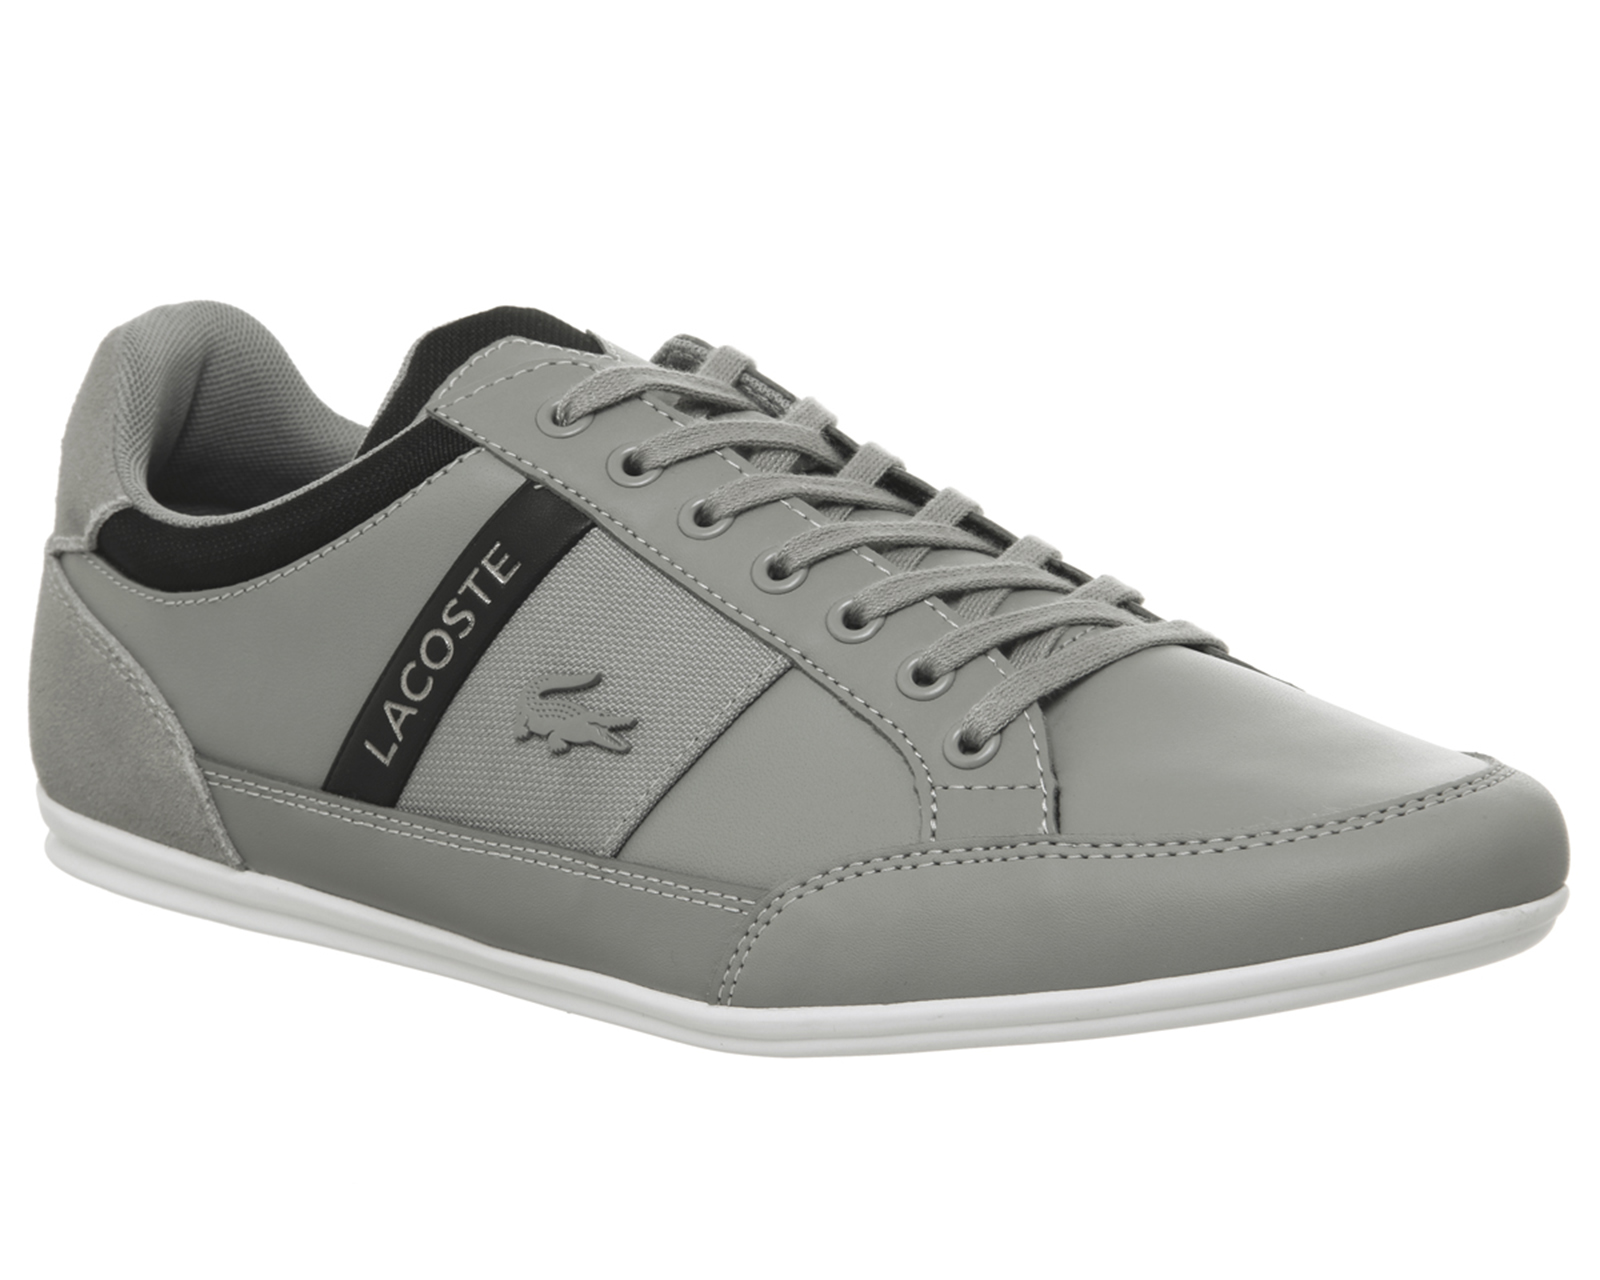 cdebb99b8dcf Lacoste Chaymon Trainers Grey Black Trainers Shoes